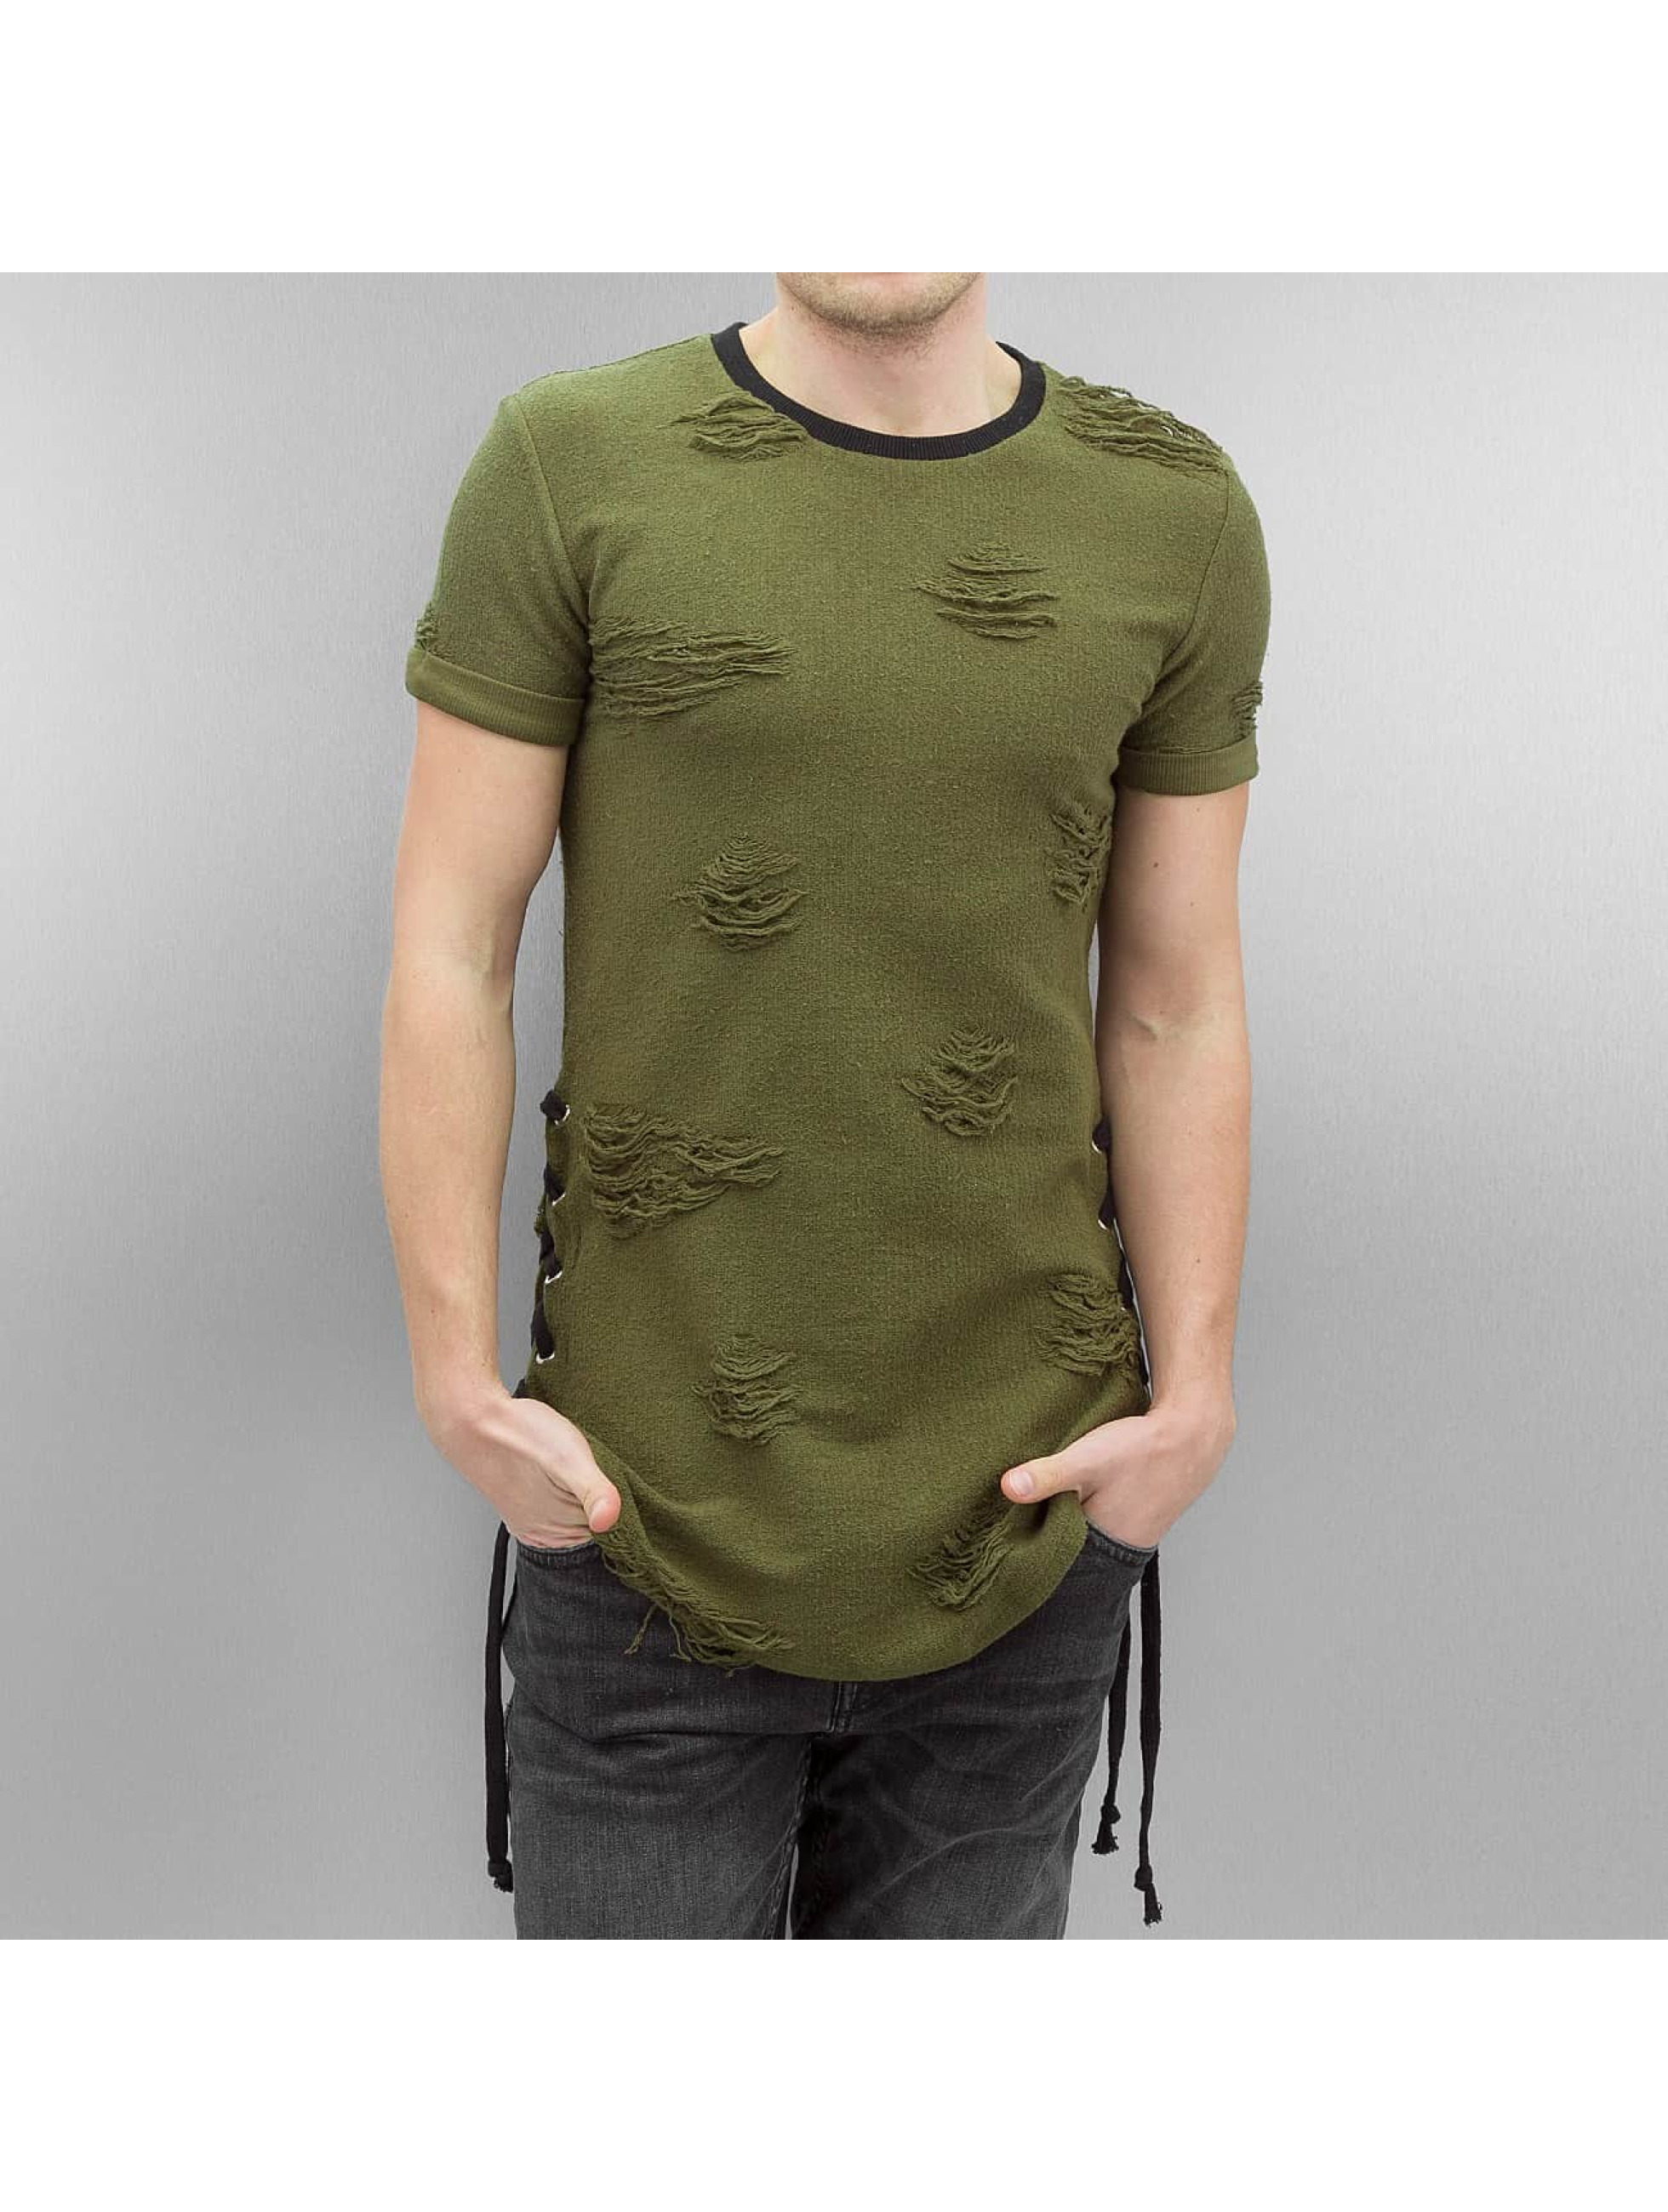 Paris Premium T-Shirt Stockton olive